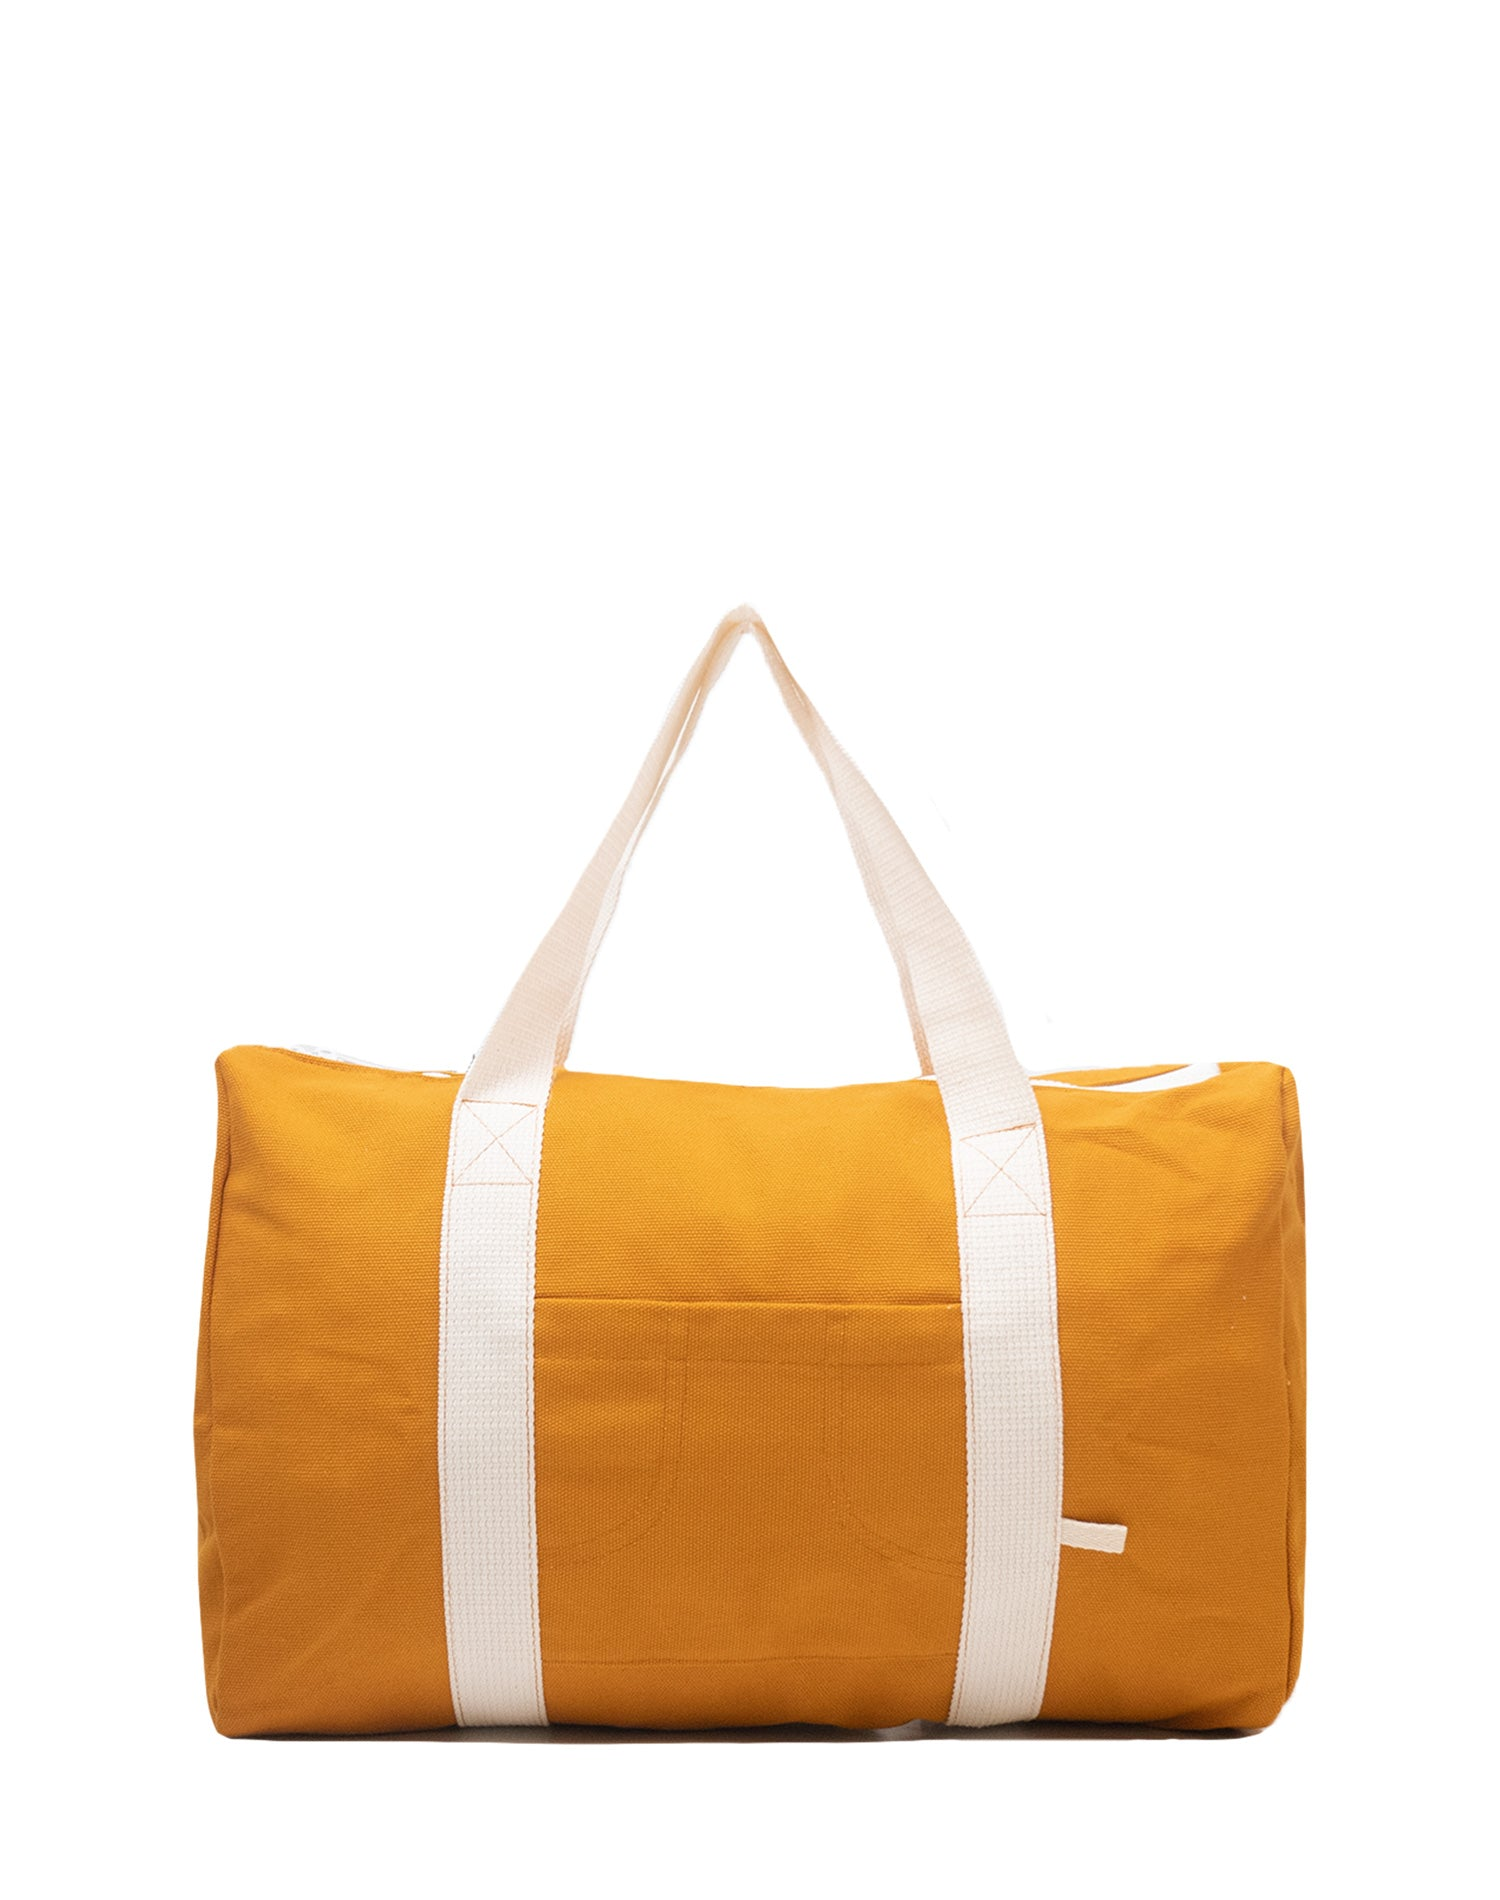 Yellow Mustard Canvas Street Duffel Bag.黃色帆布行李袋